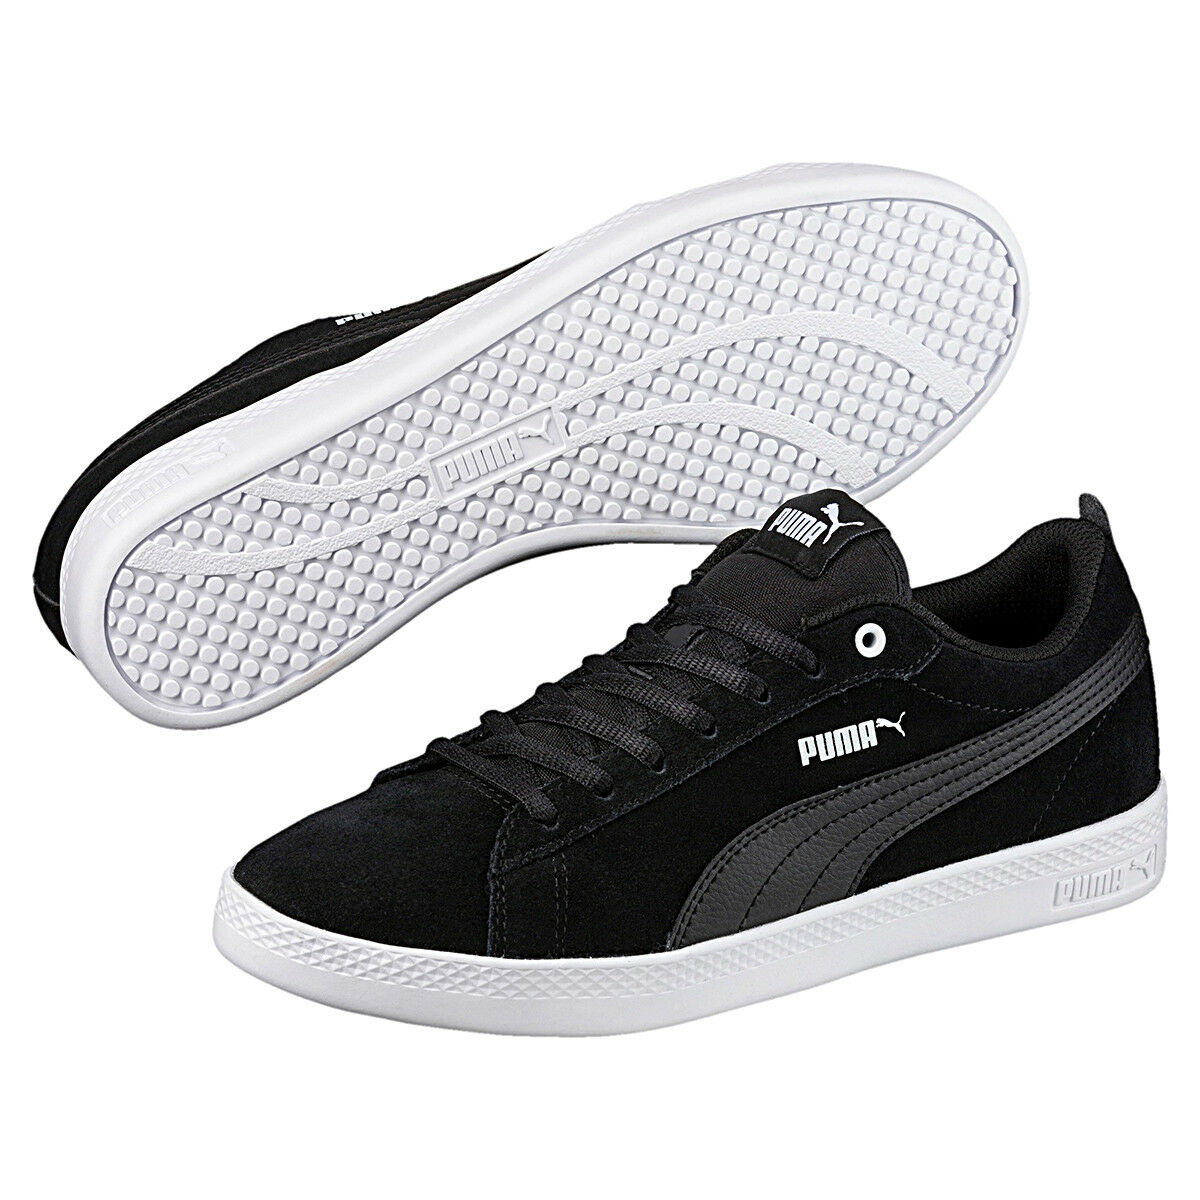 Puma Smash Wns V2 Sd Women's Sneakers Suede shoes Suede 365313 01